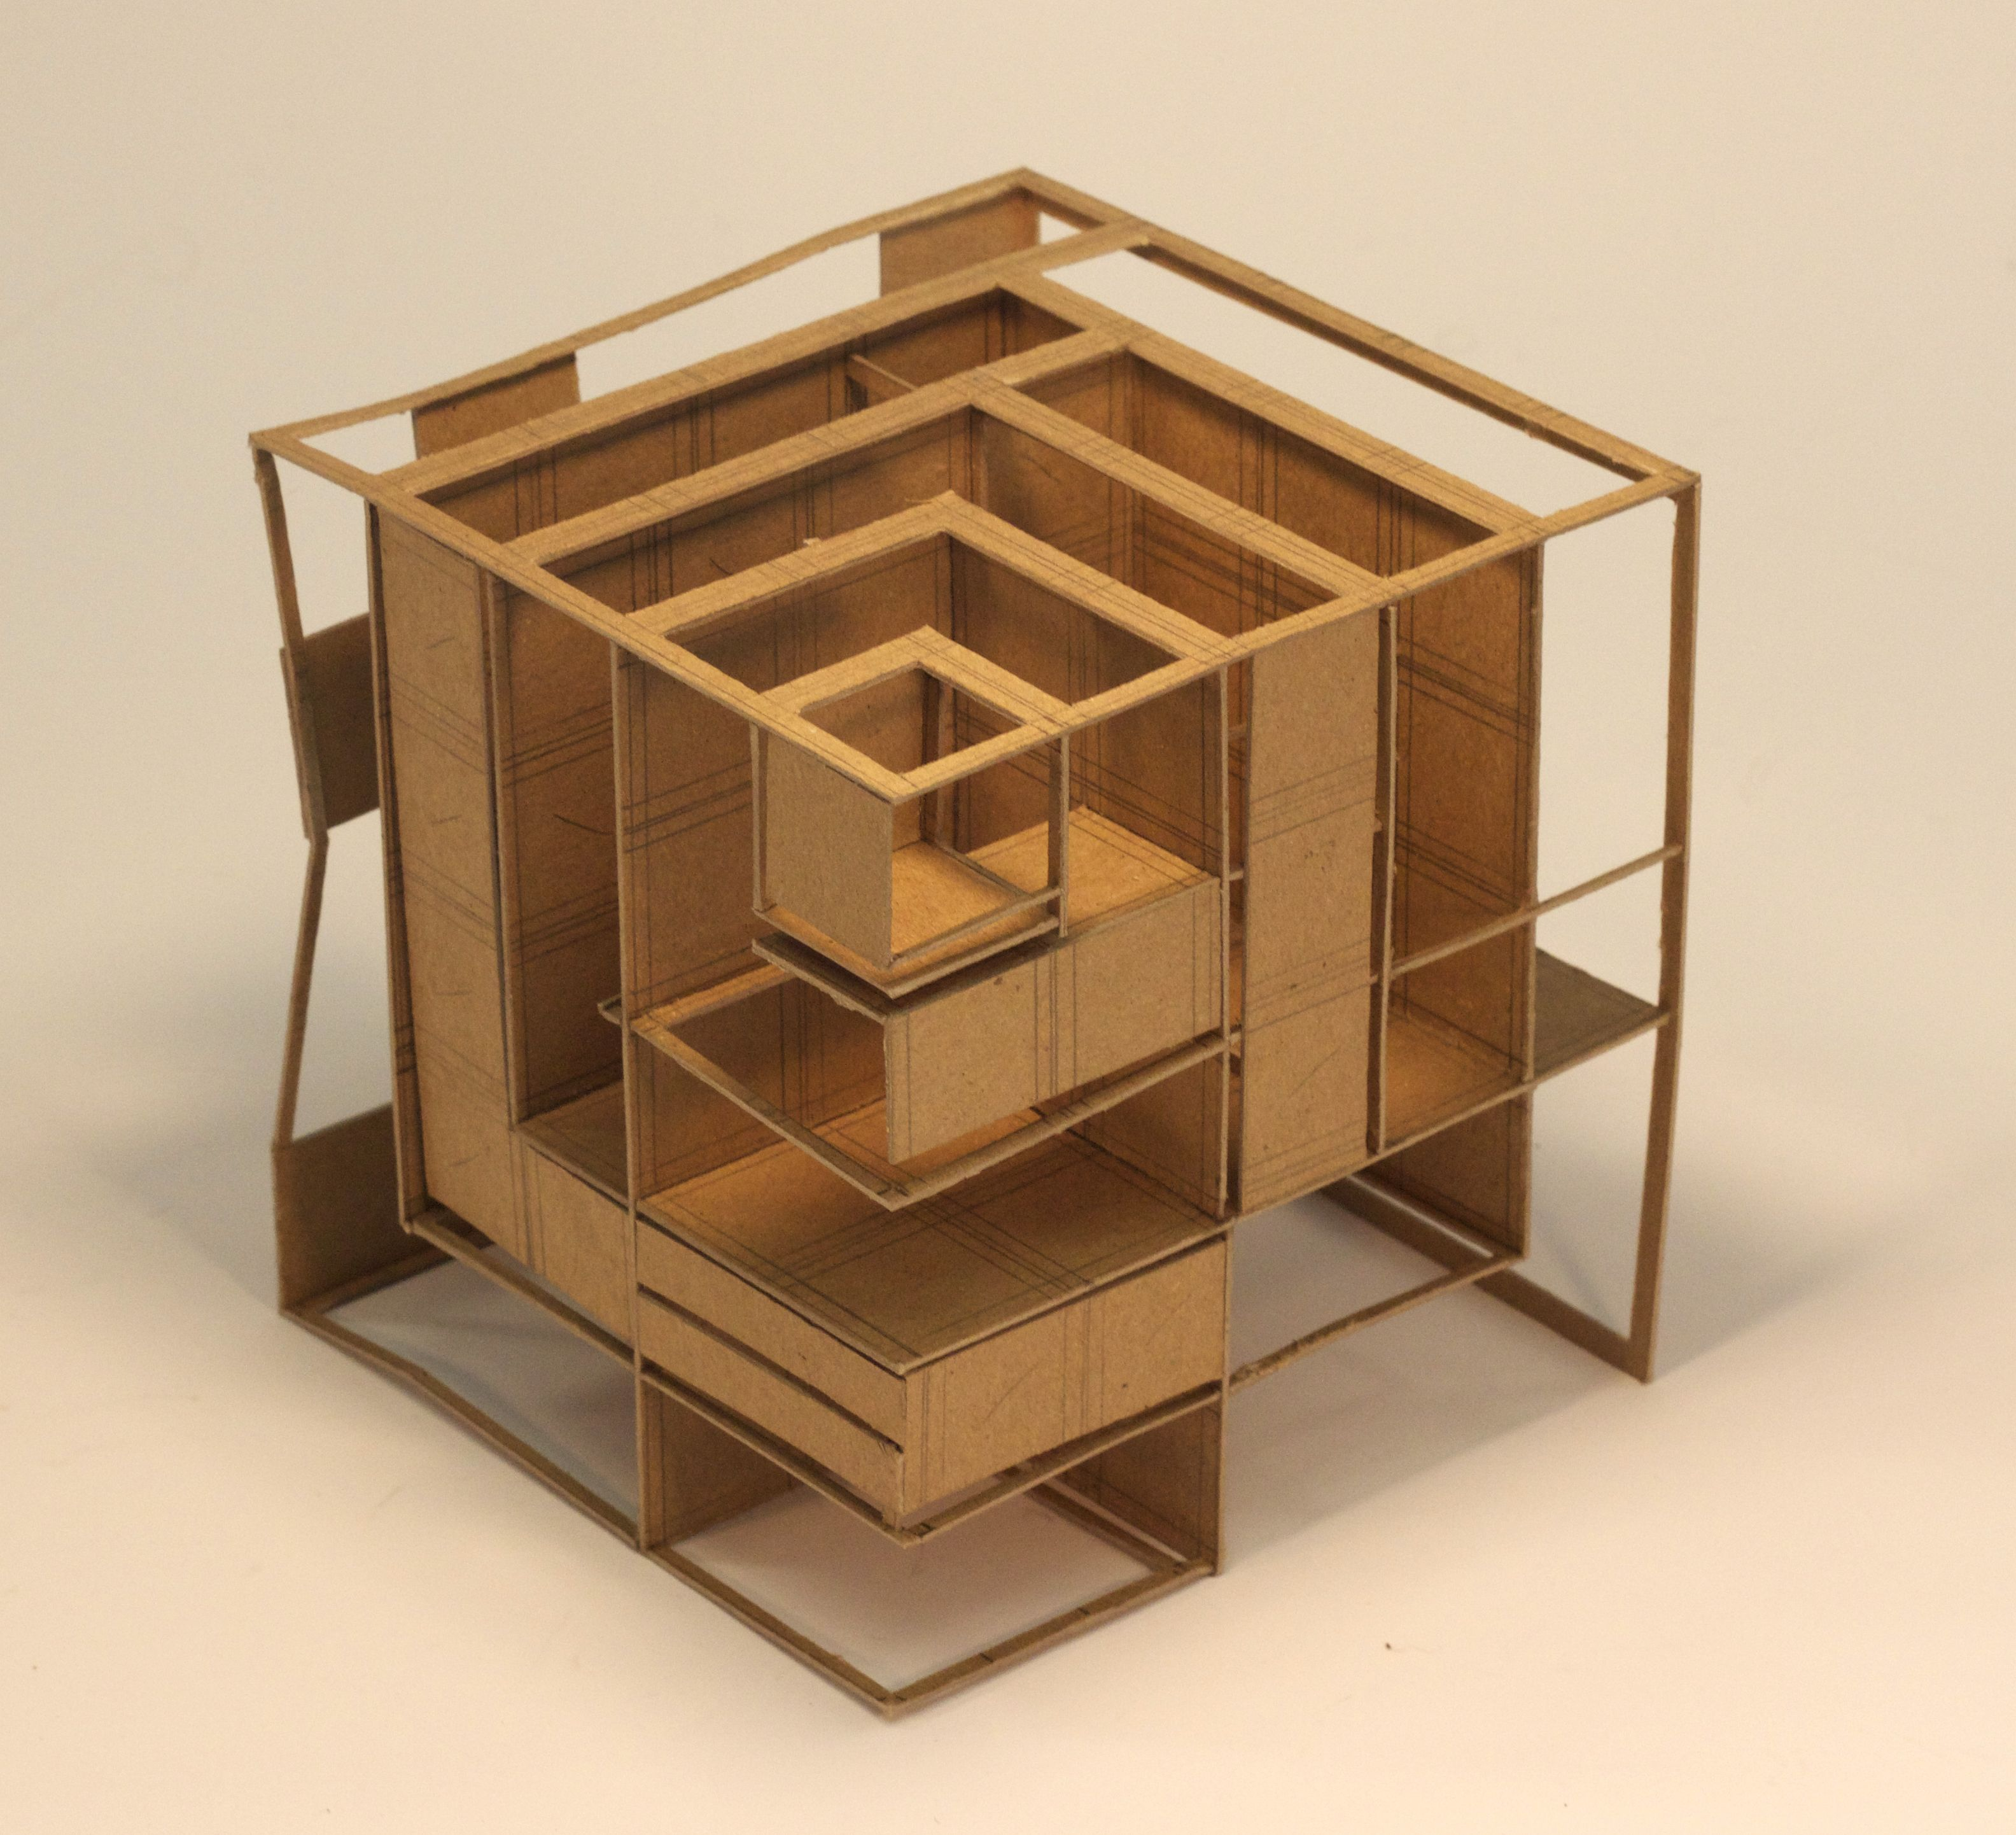 Some Spaces Formed Note Regulating Lines Spatial Movement Lacking The Revolutionary Cube